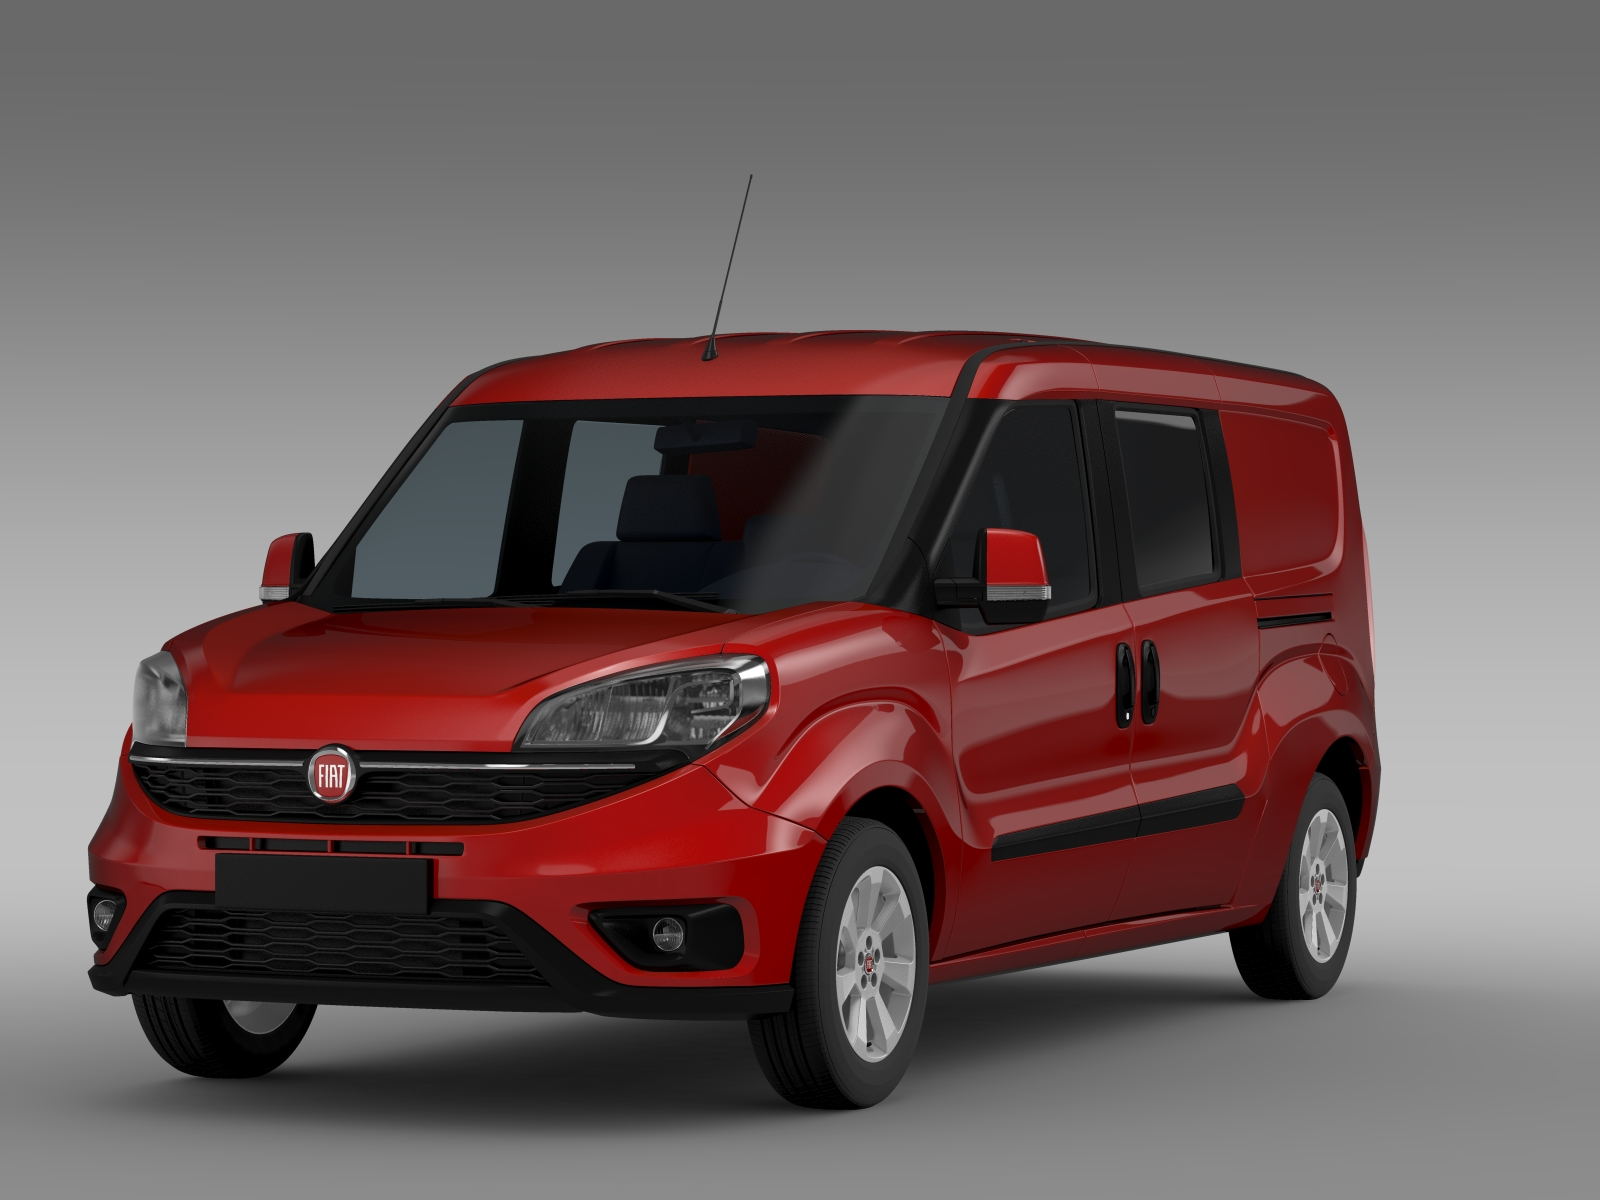 fiat doblo maxi combi 263 2015 3d model buy fiat doblo maxi combi 263 2015 3d model flatpyramid. Black Bedroom Furniture Sets. Home Design Ideas